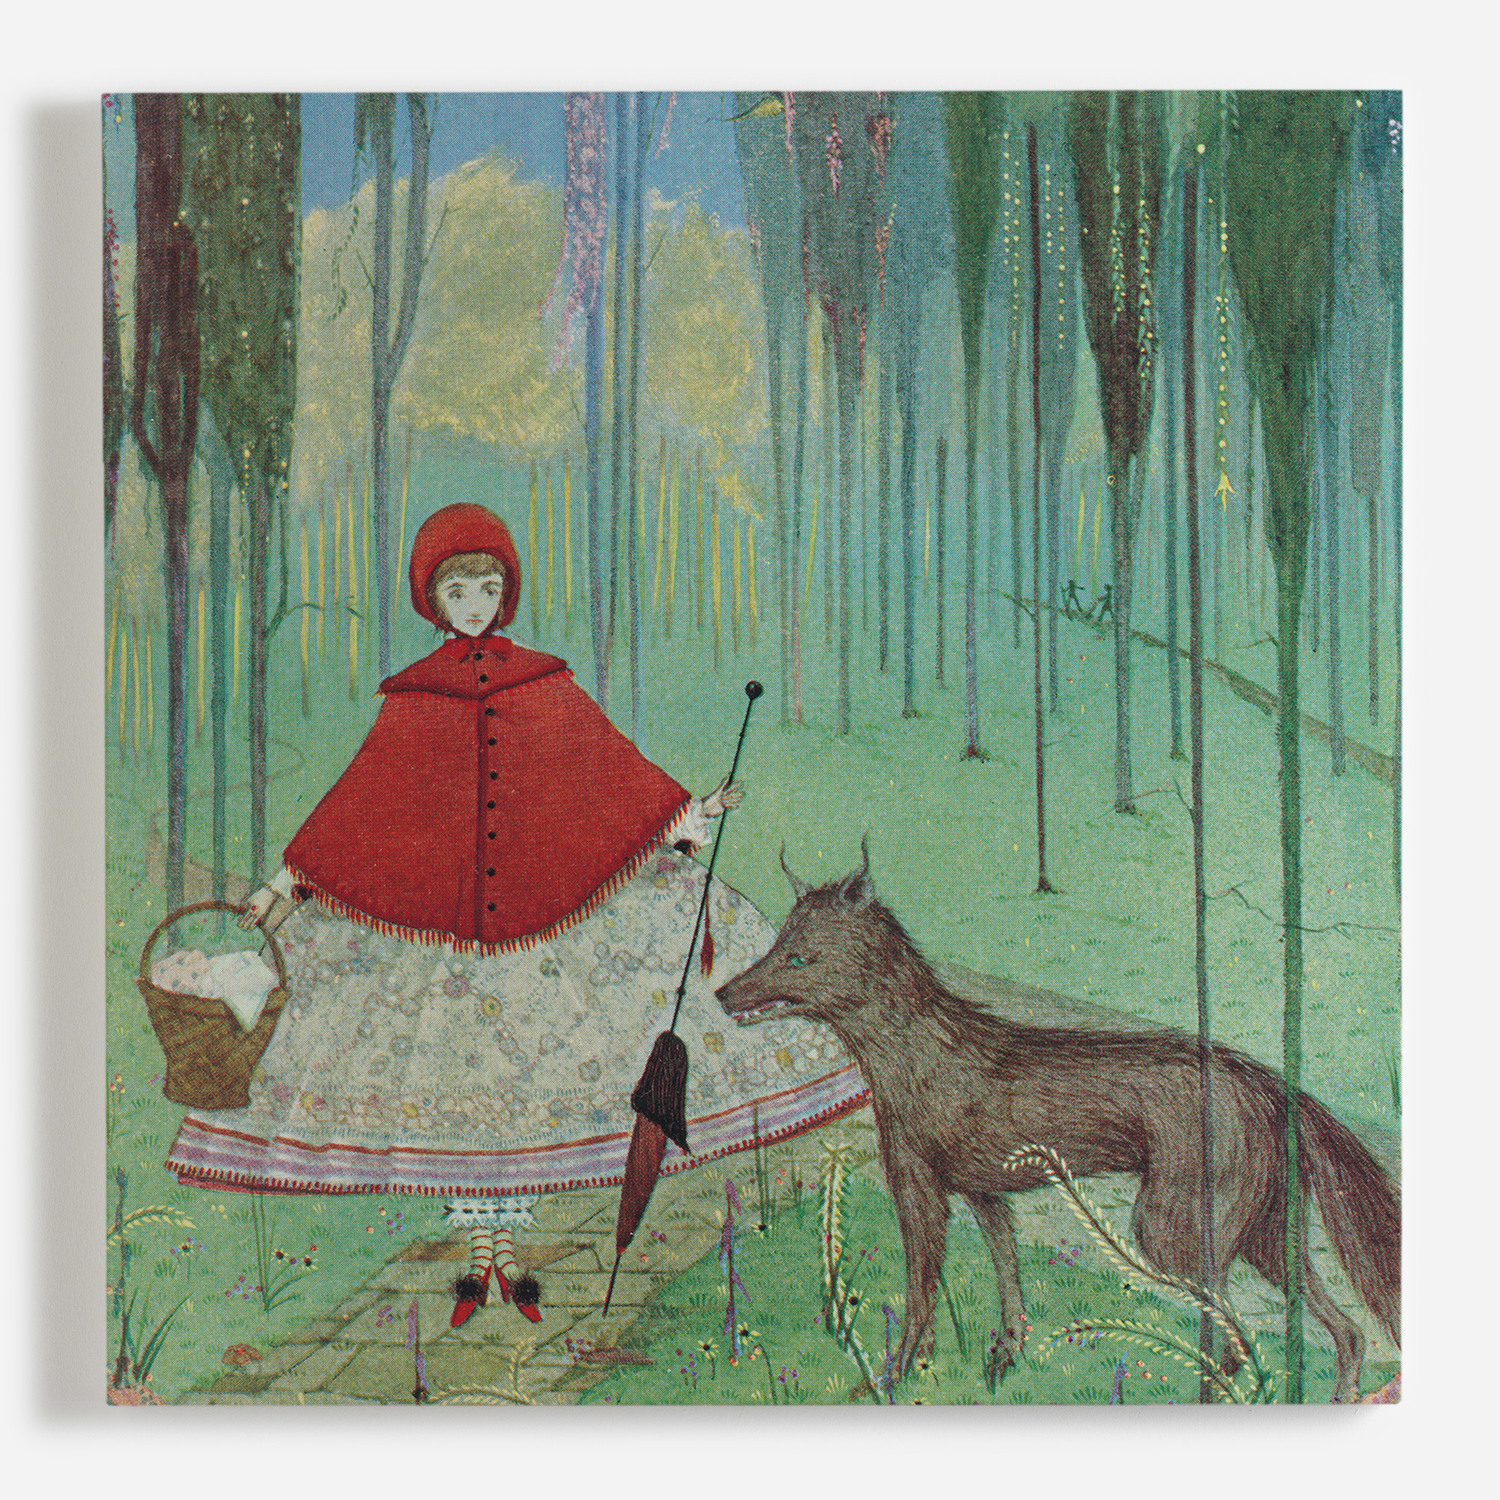 Little Red Riding Hood Surfaceview